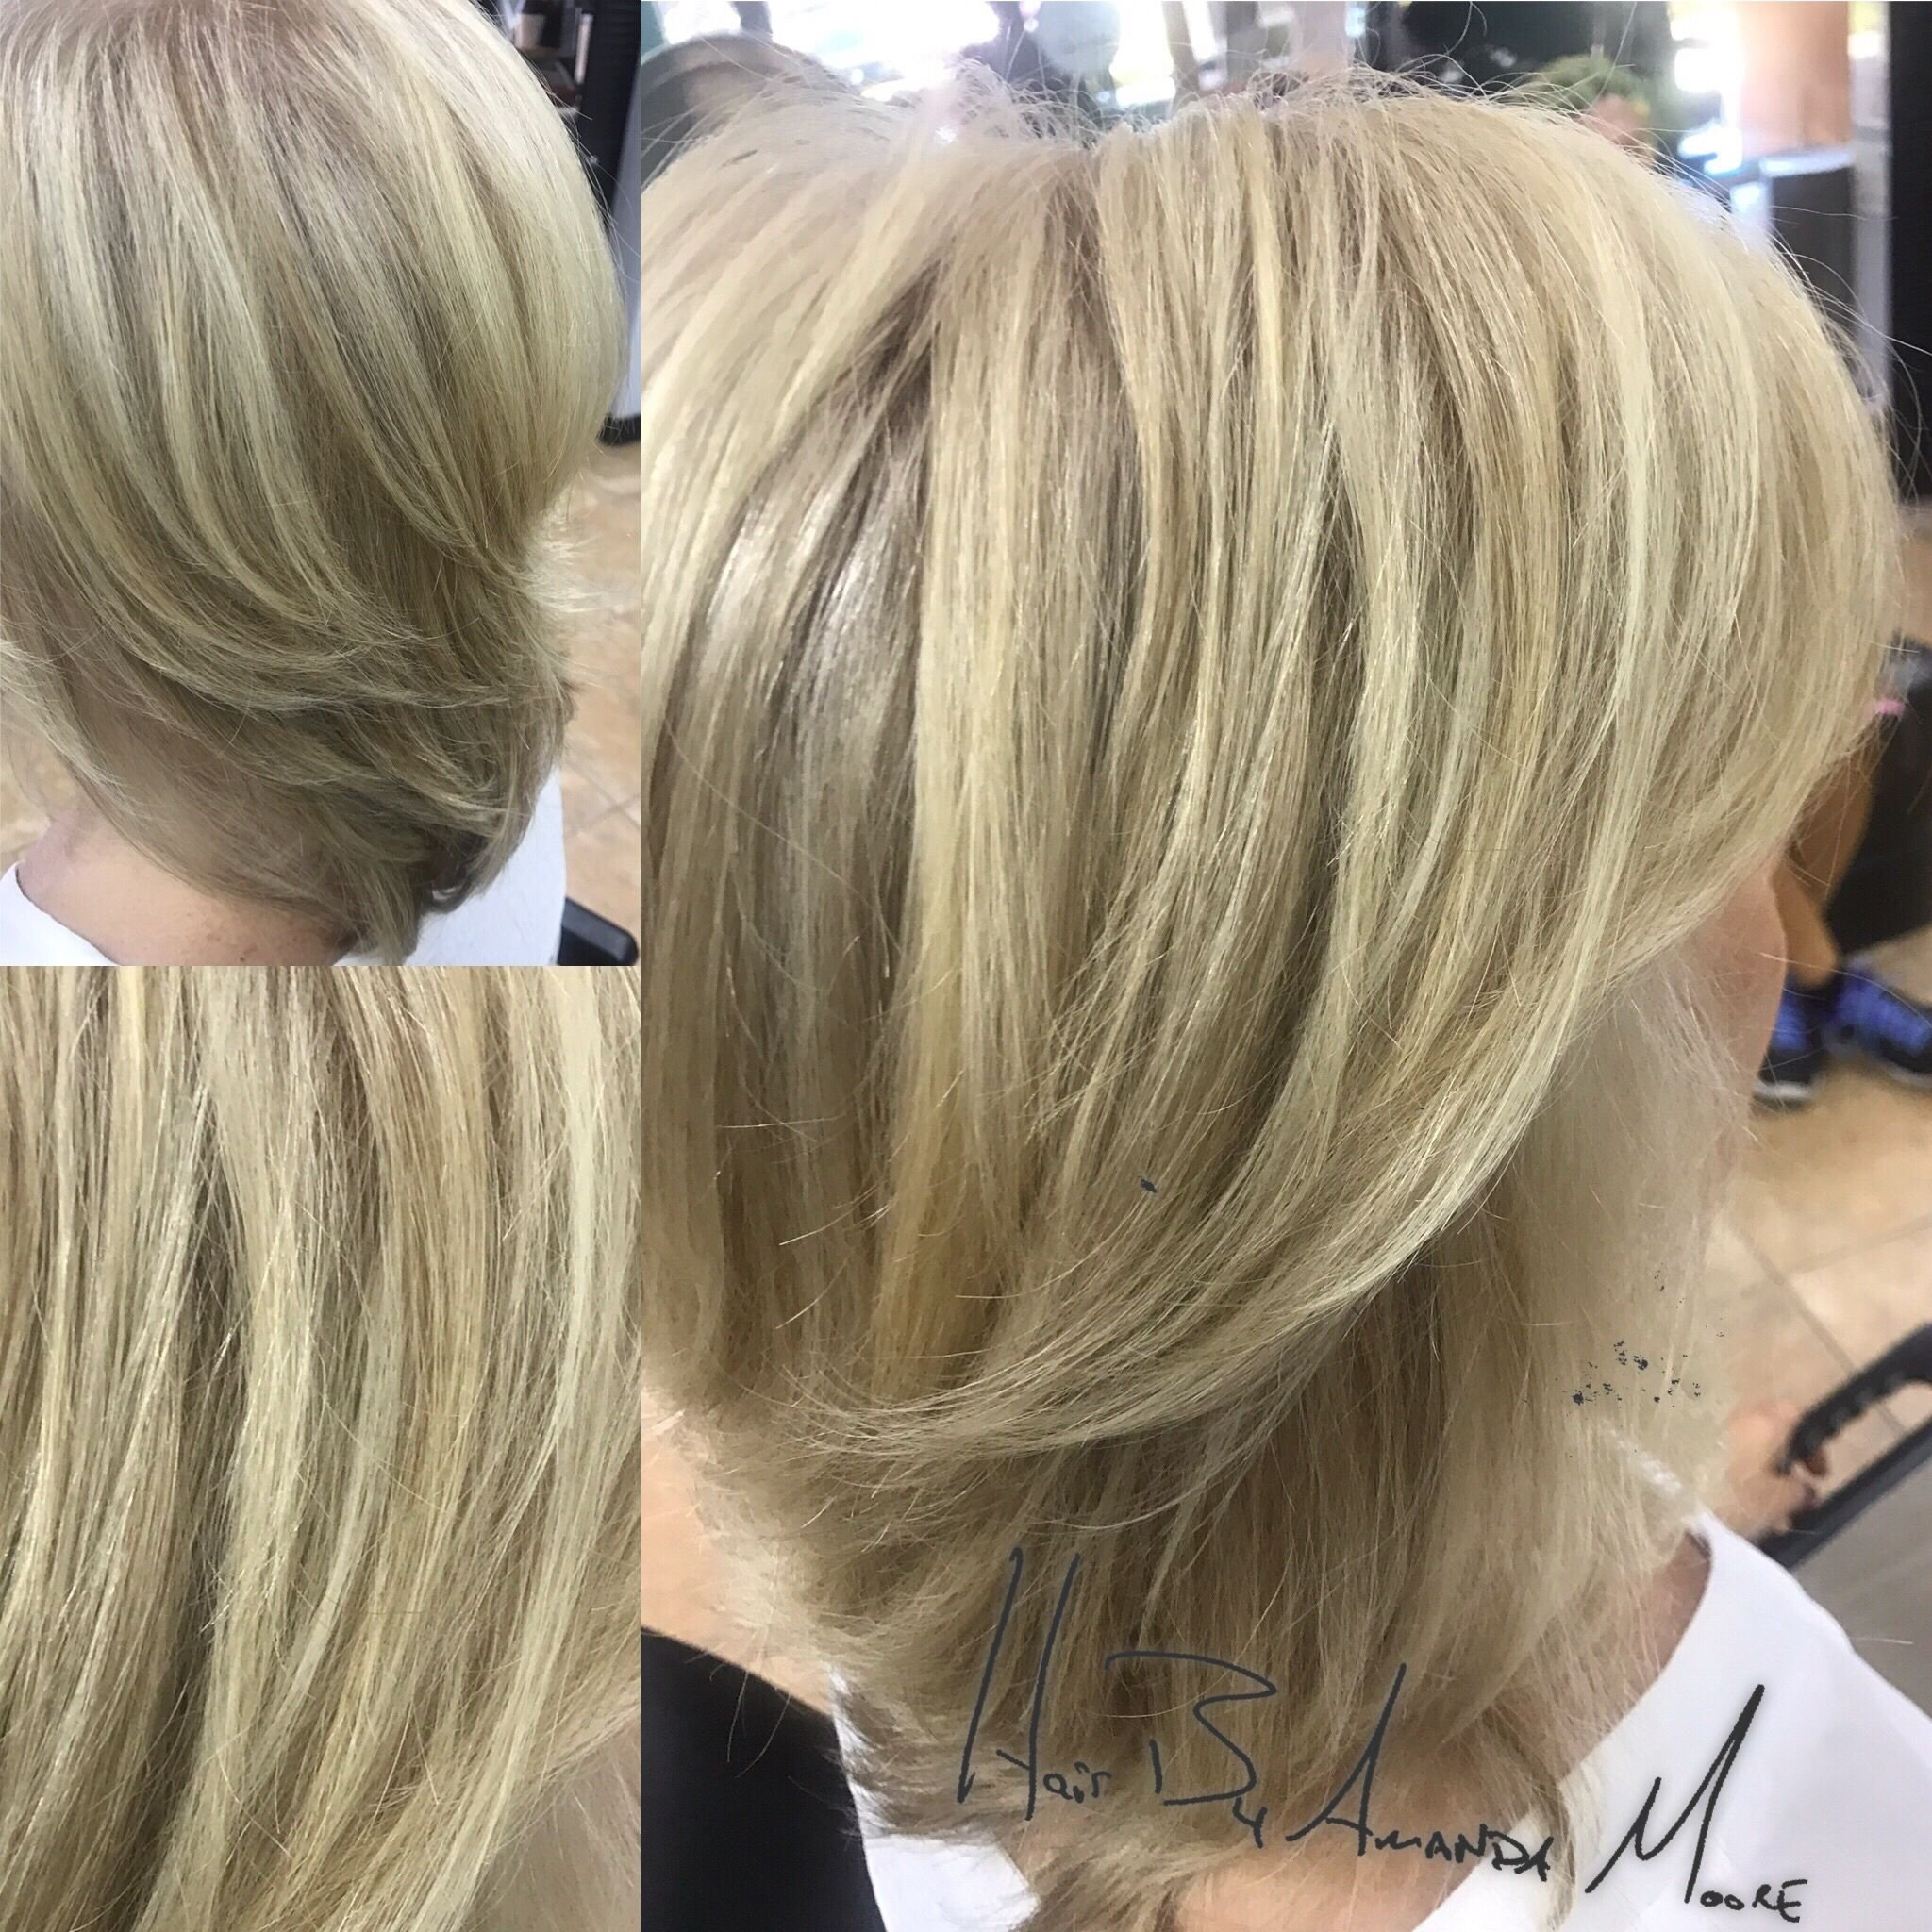 The Best 10N 10Nw Redken Chromatics Salonsantinas Behindthechair Pictures